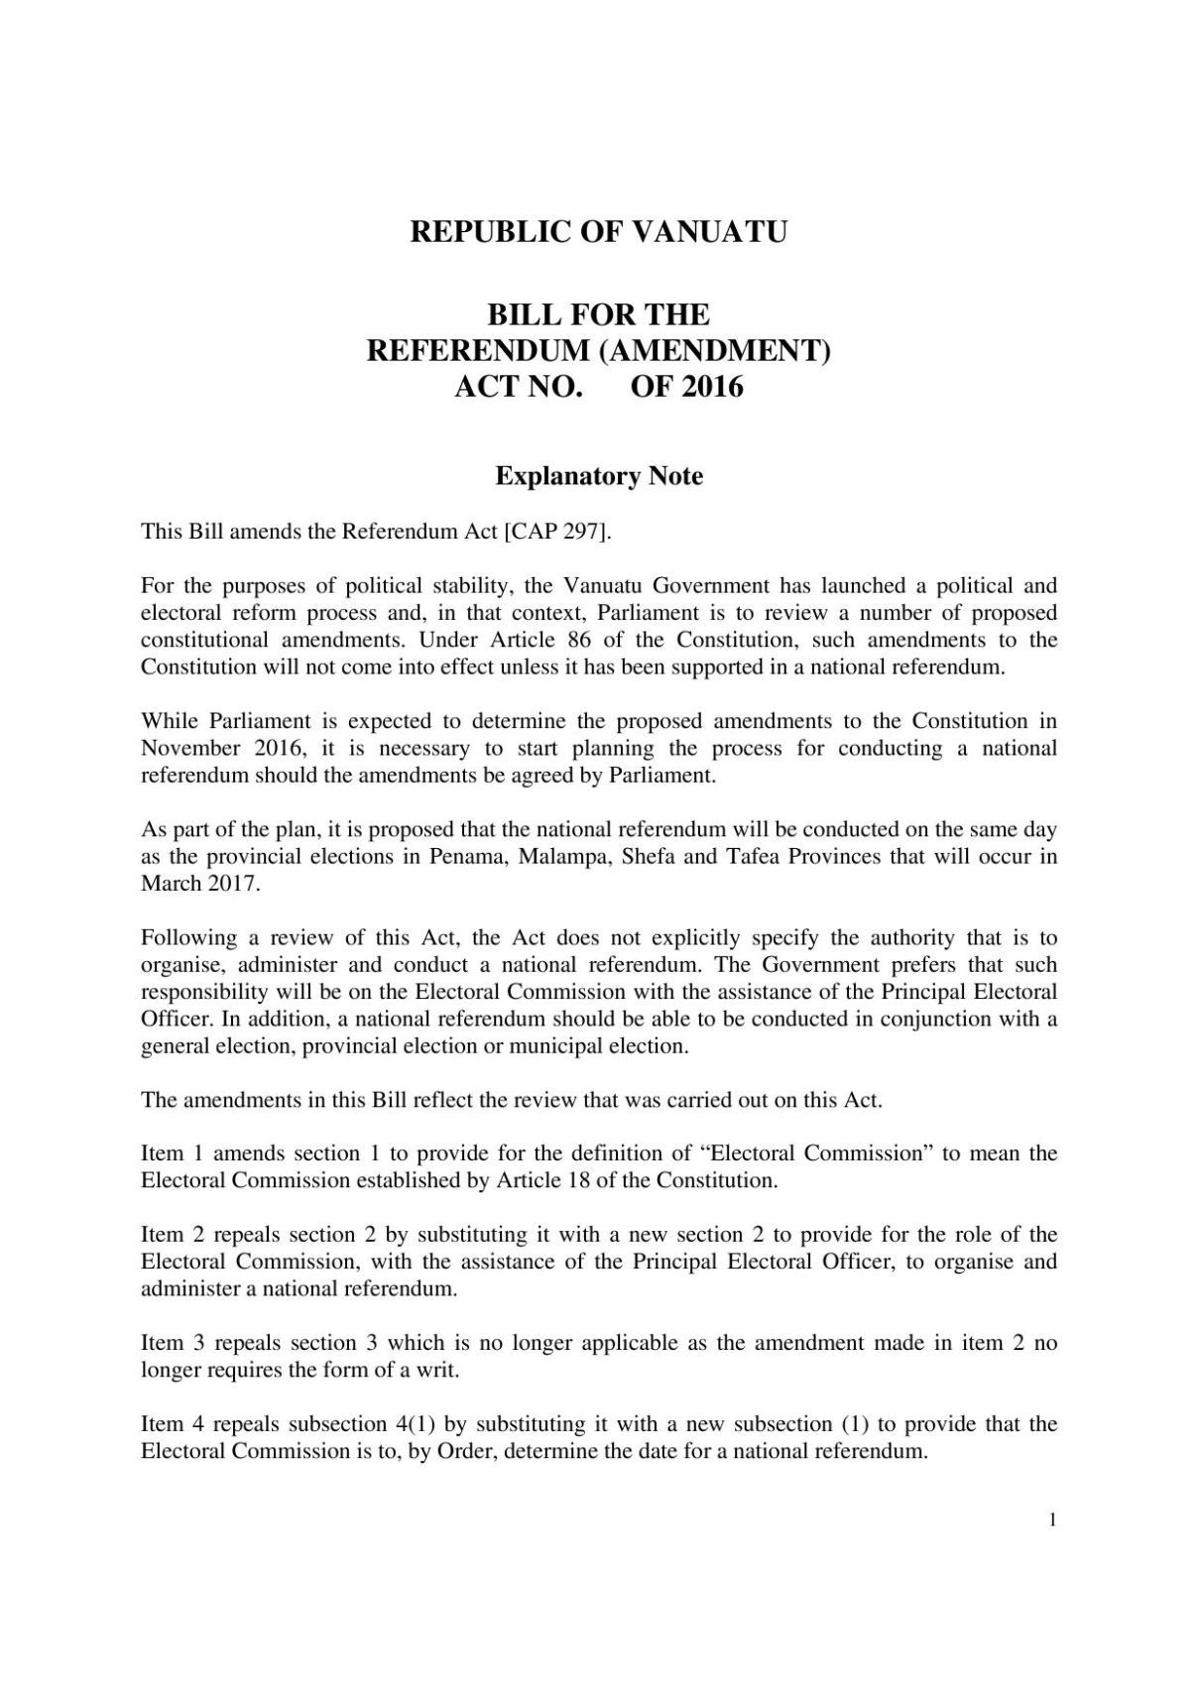 Bill for the Referendum (Am) Act No. of 2016.pdf